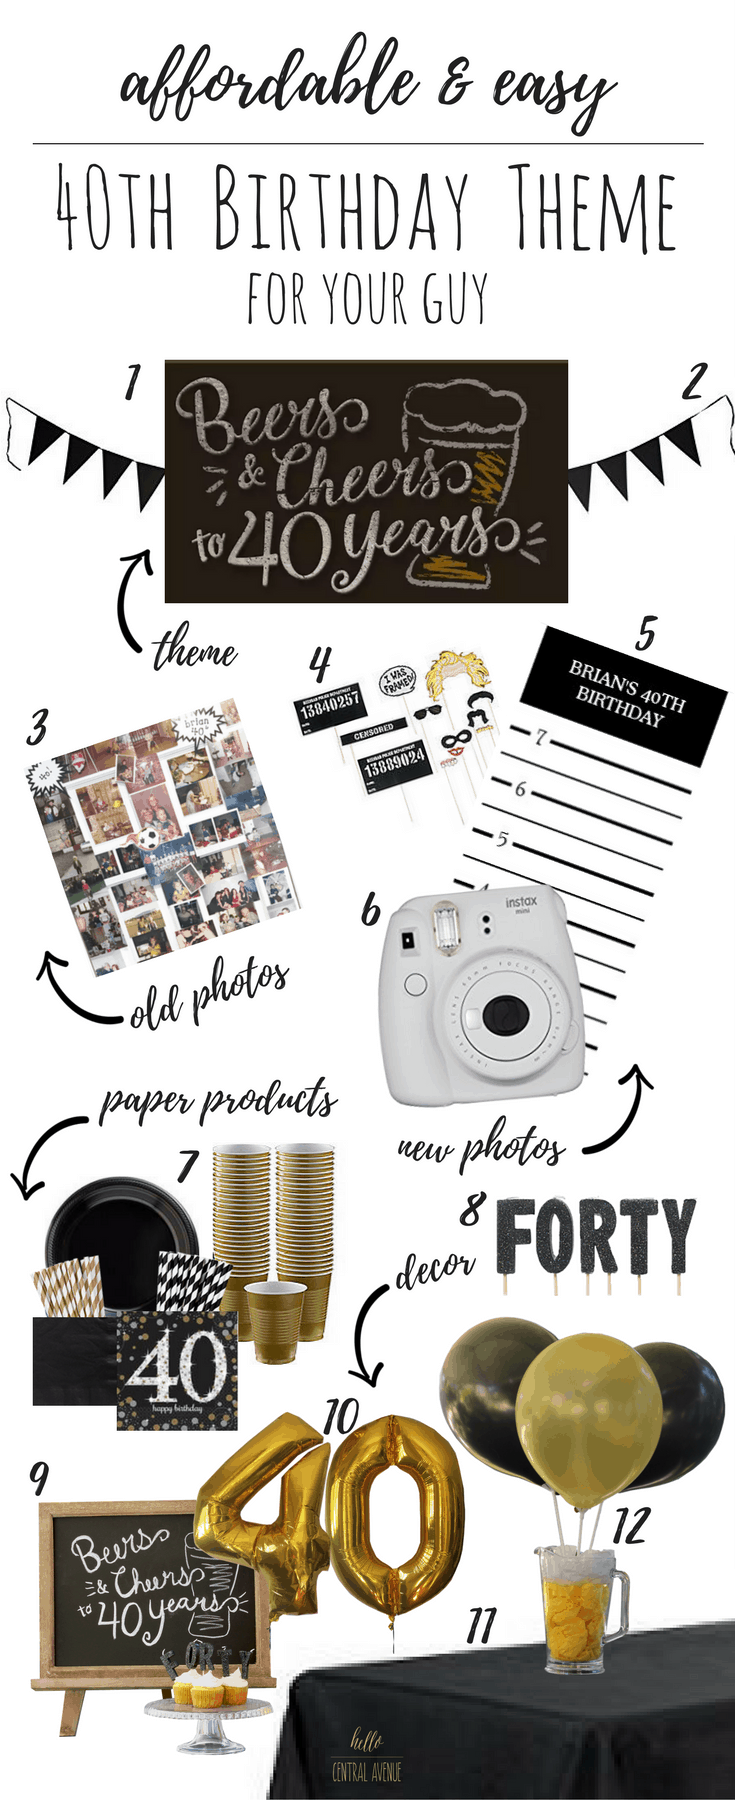 If you are looking to throw a 40th birthday party on a budget, here are some affordable and easy ideas!